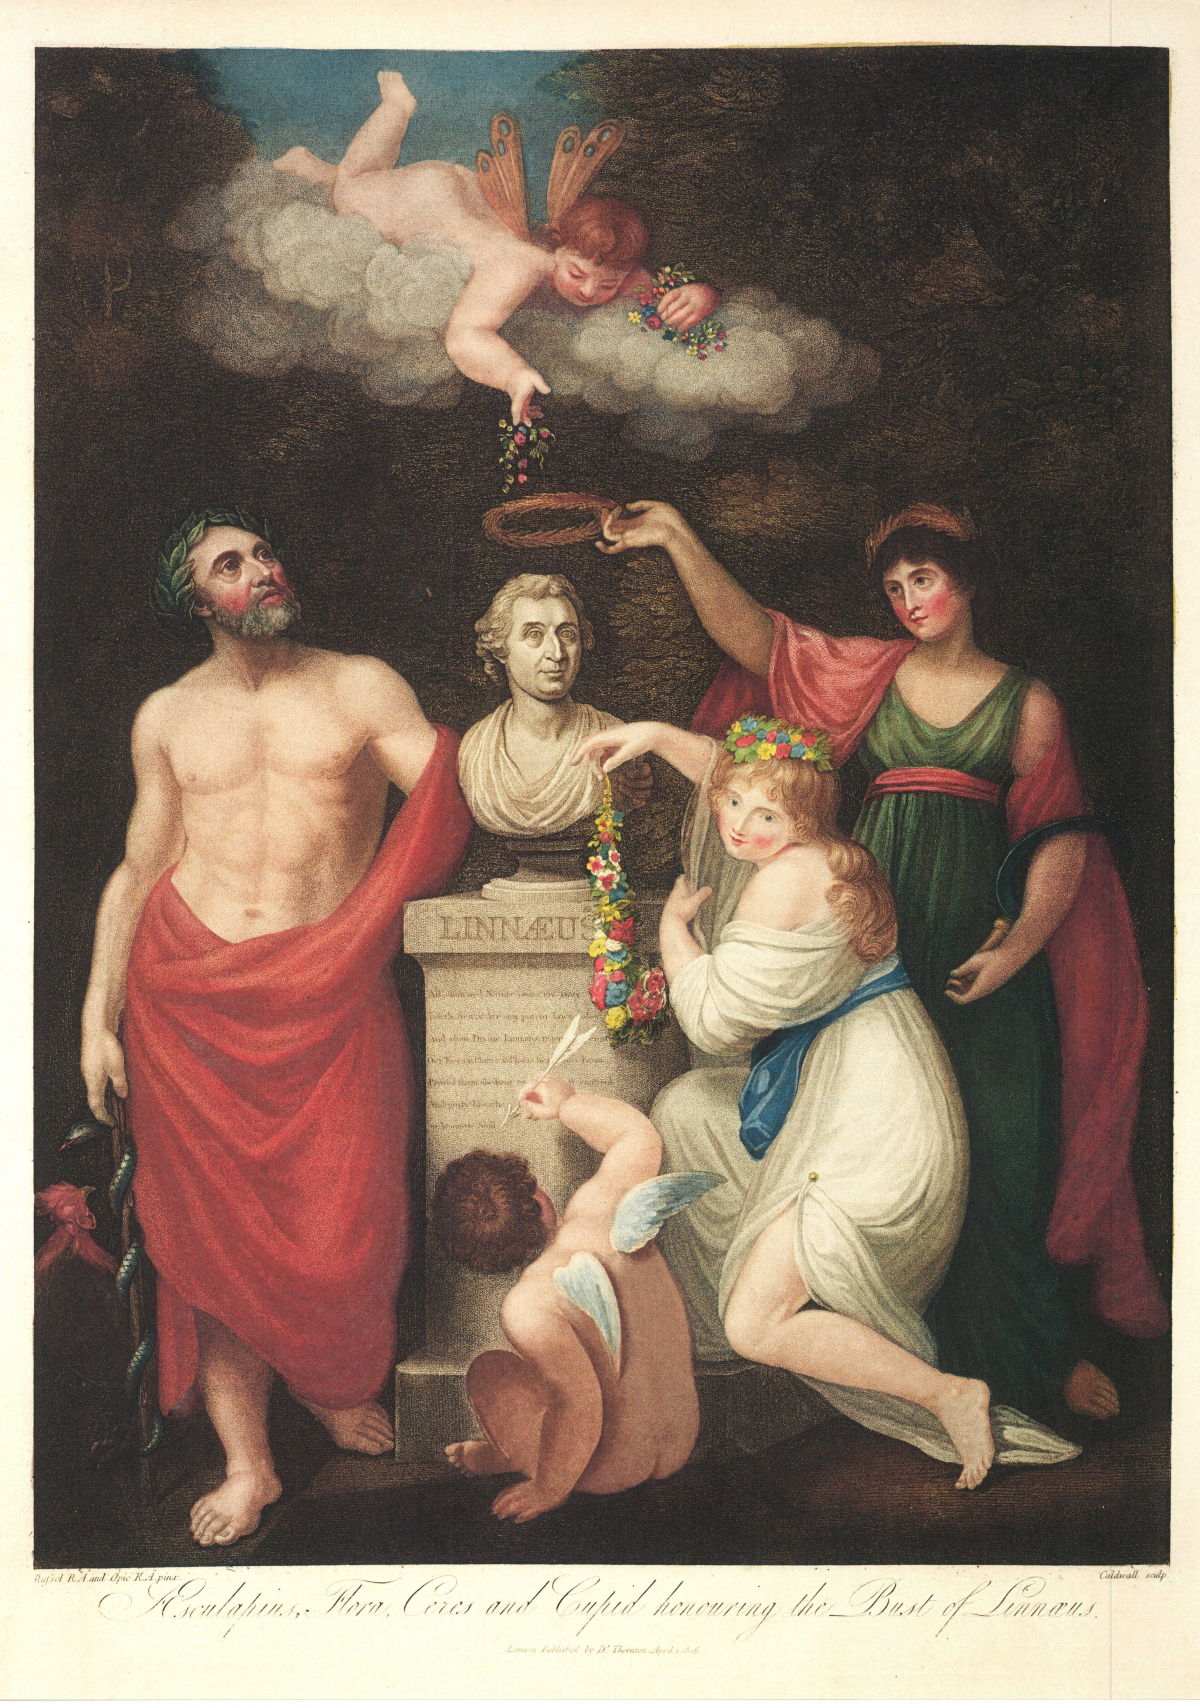 AESCULAPIUS, FLORA, CERES AND CUPID HONOURING THE BUST OF LINNAEUS